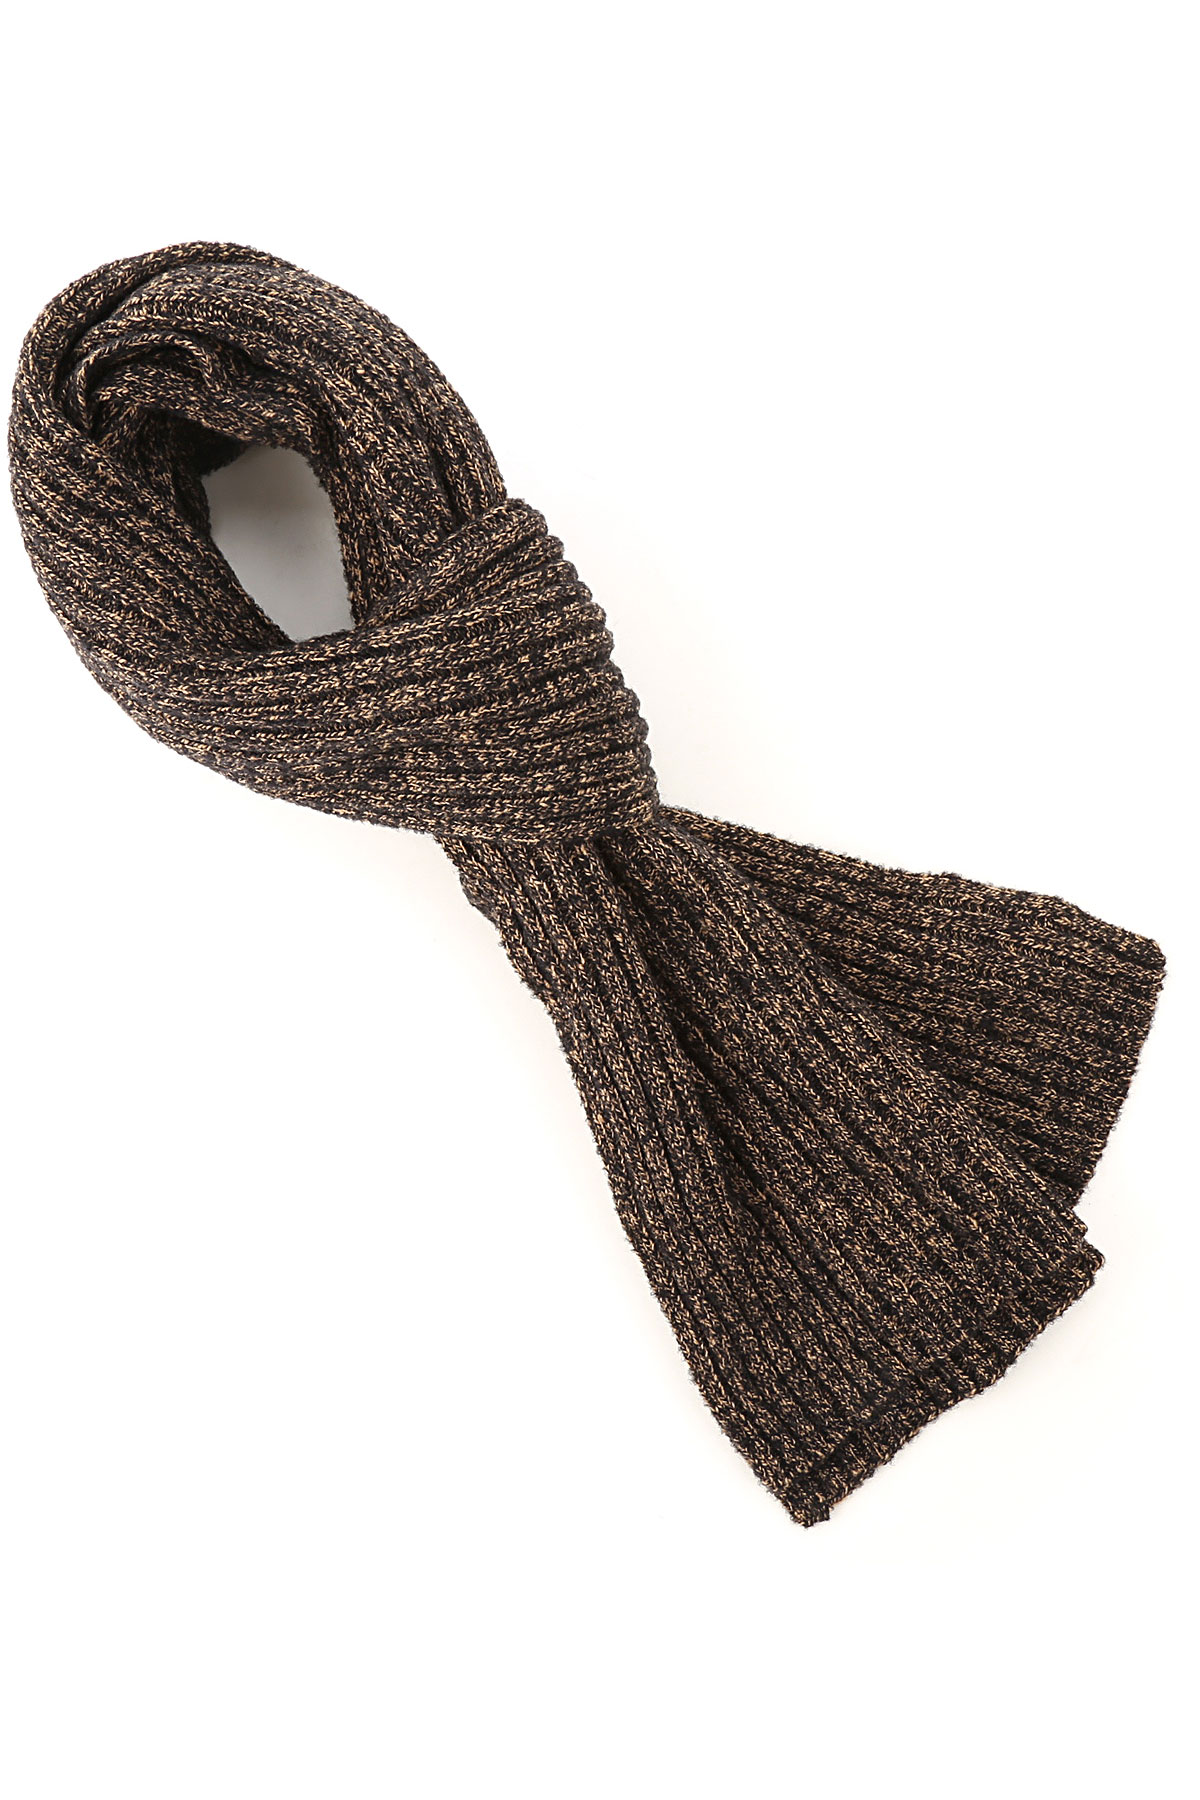 Brooksfield Scarf for Men, Bark brown, Wool, 2019